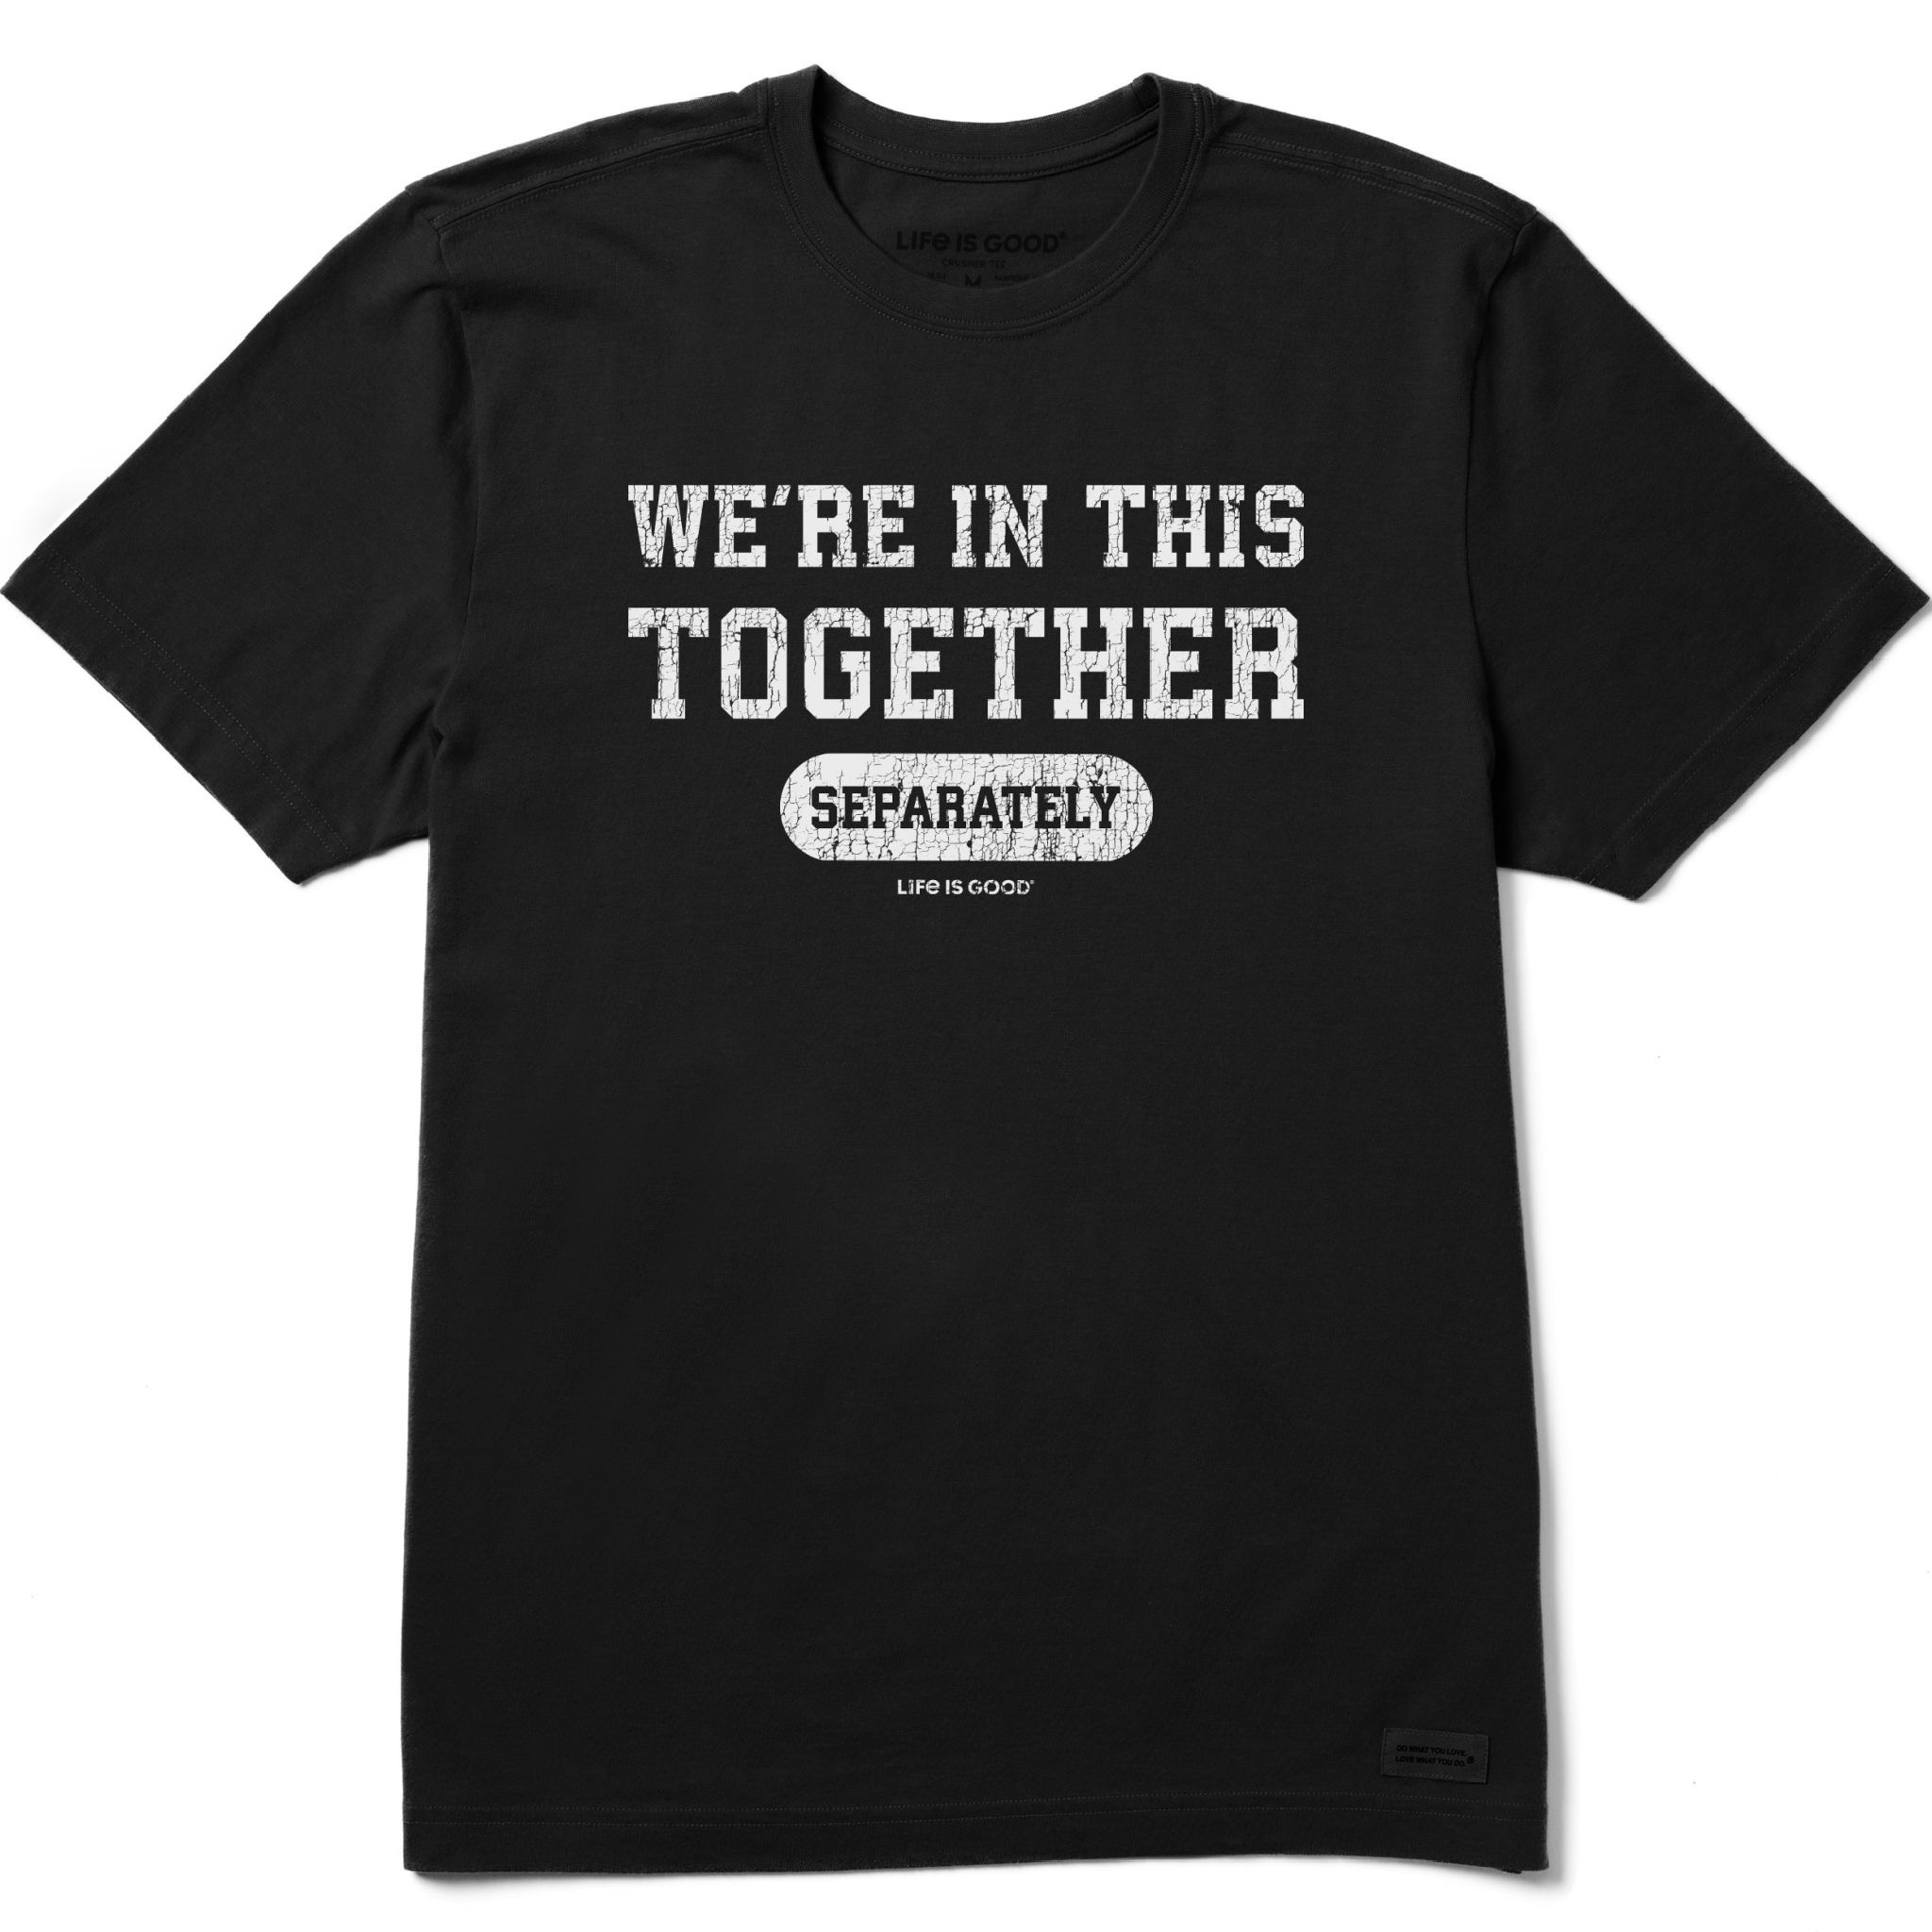 We're In This Together T-Shirt Life Is Good-1